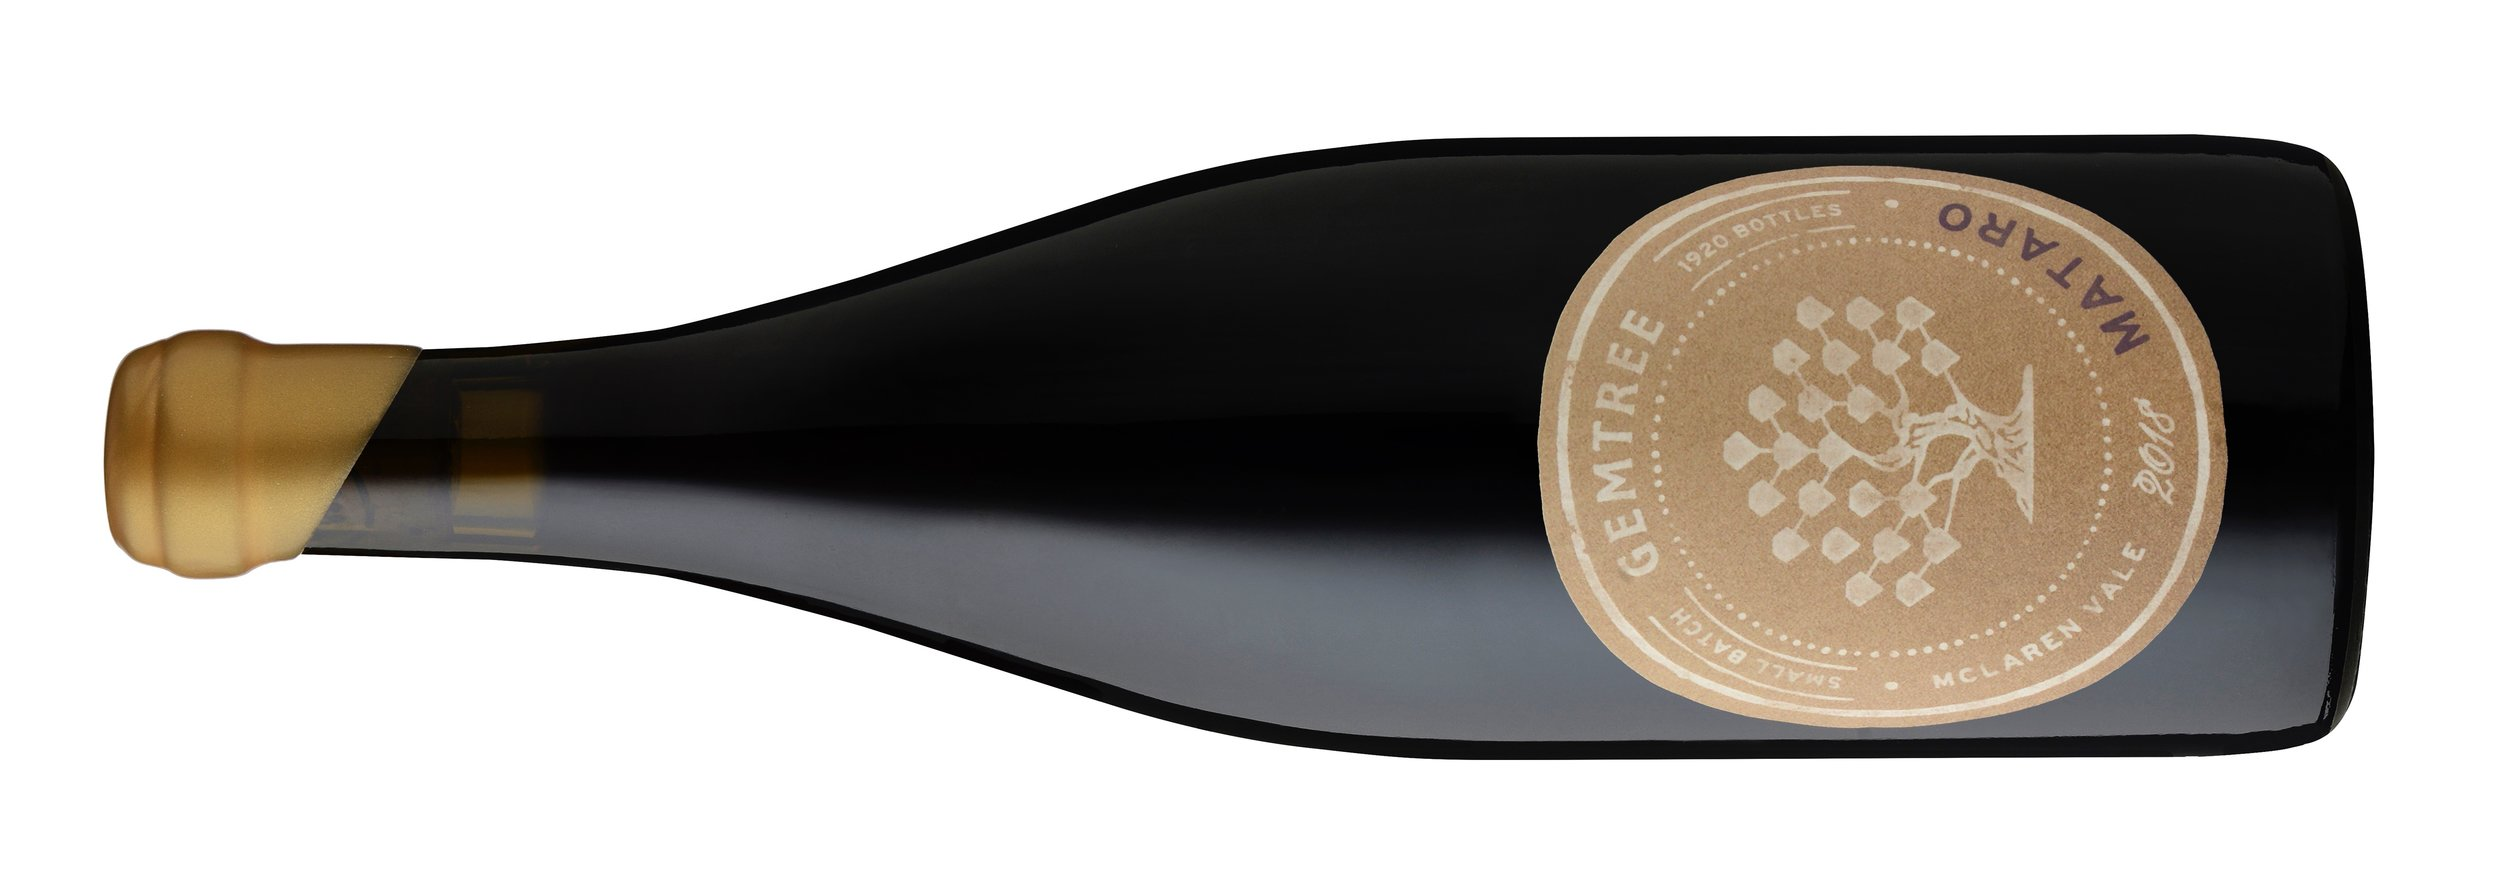 GEMTREE McLaren Vale Mataro    ジェームツリー マクラーンヴィイル グ ルナッシュマクラーンヴィイルマクラーンフラット  ¥6,500 2018 ,750ml, 14.5% , オーガニック・バイオダイナミック  This mataro has some depth and structure with attractive prosciutto-like reduction. Unfurls offering a core of excellent fruit sprinkled with Middle Eastern spices like sumac, grip and give to the tannins, really savoury and mouth-watering acidity on the finish. Small Batch definitely with a mere 285 bottles produced.